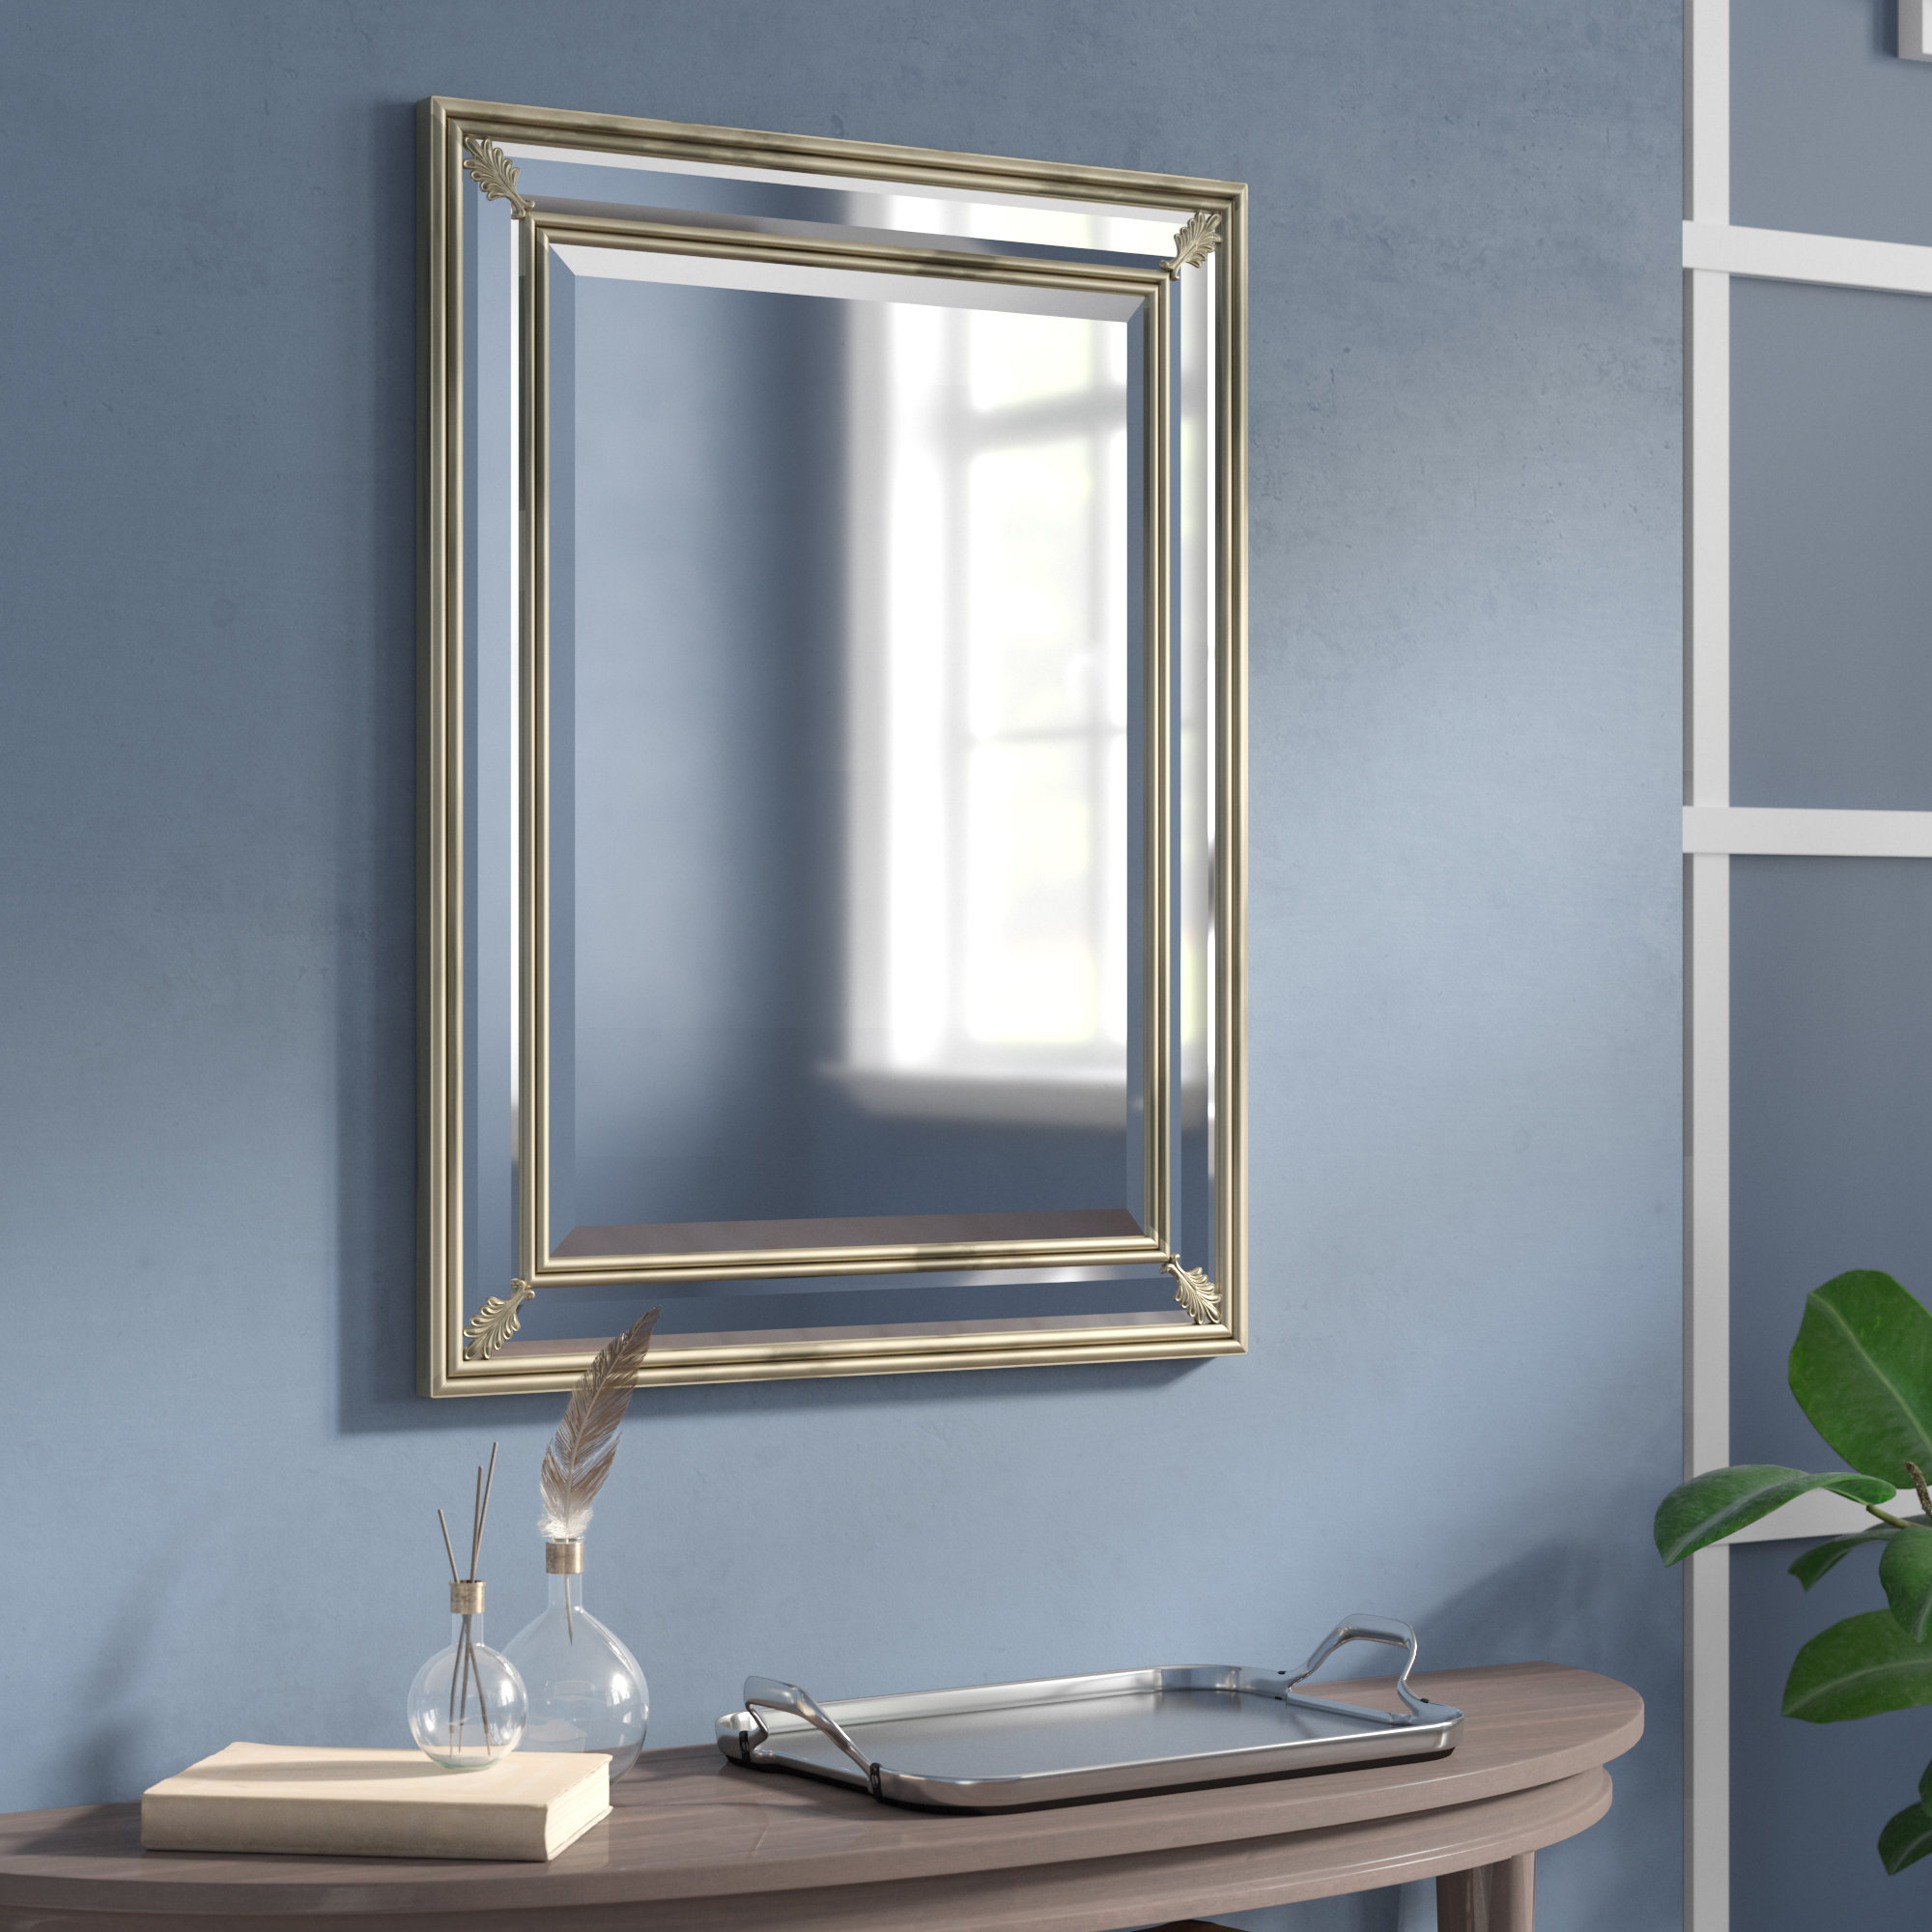 Darby Home Co Wilson Accent Mirror & Reviews | Wayfair (View 7 of 20)